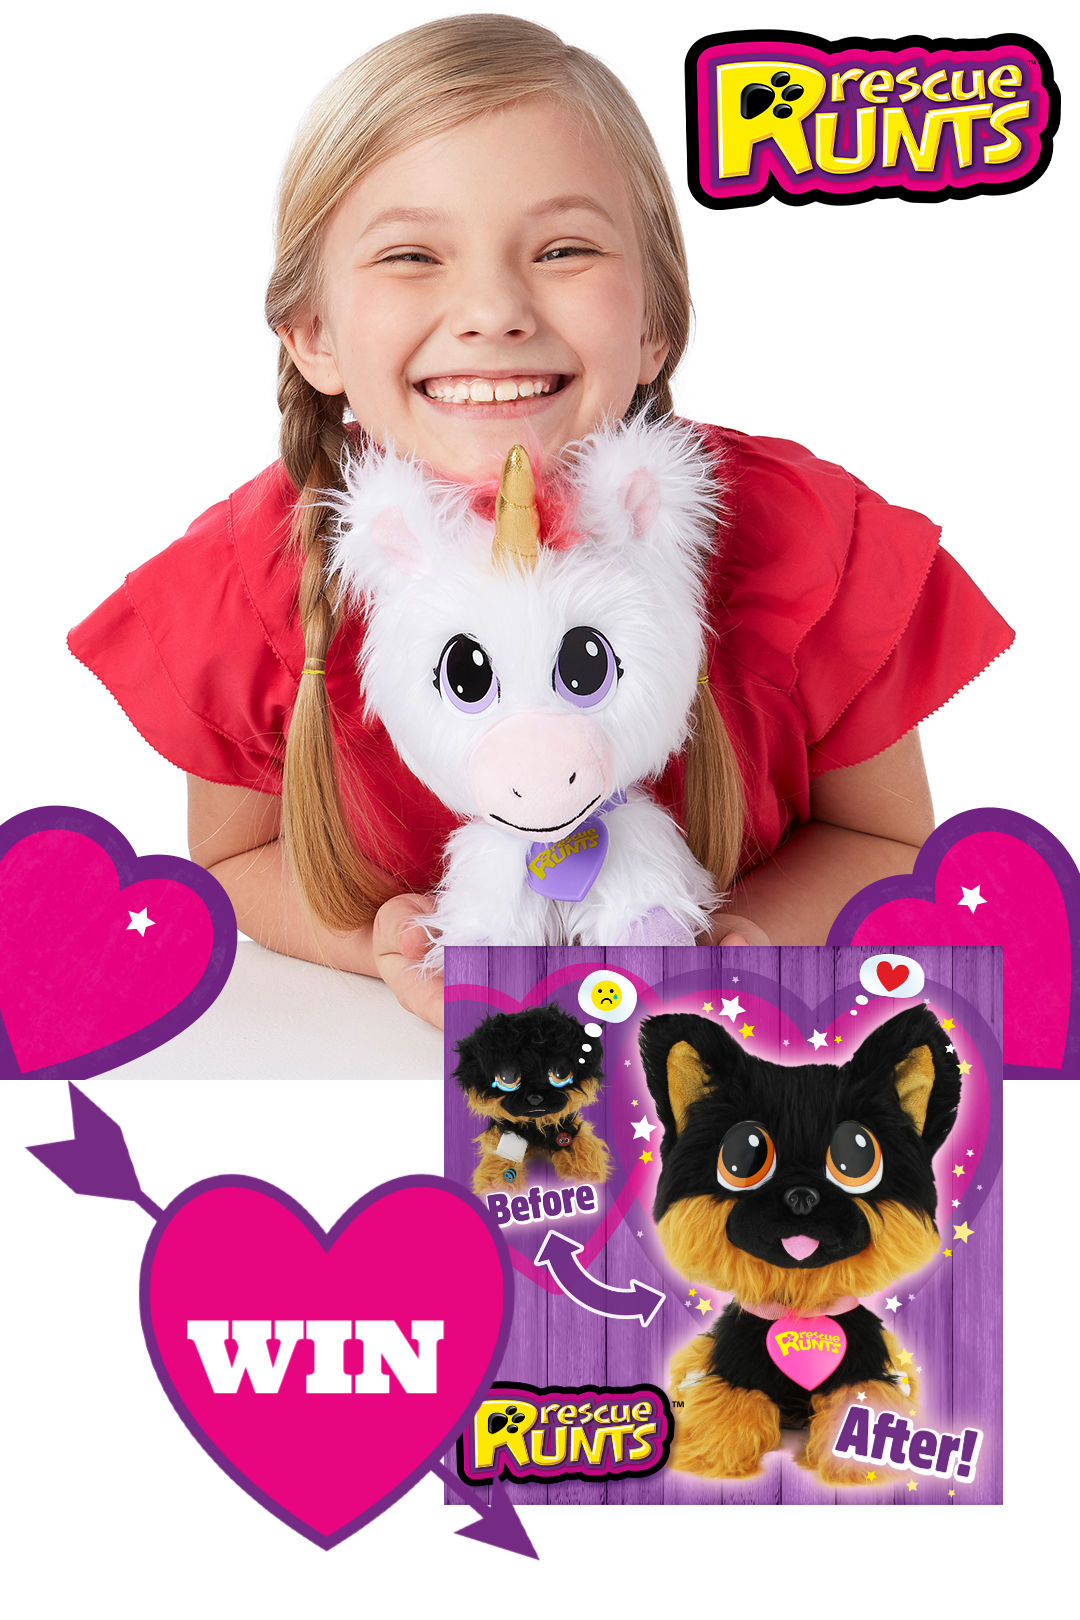 Win a Rescue Runt with us this Advent! #win #giveaways toys